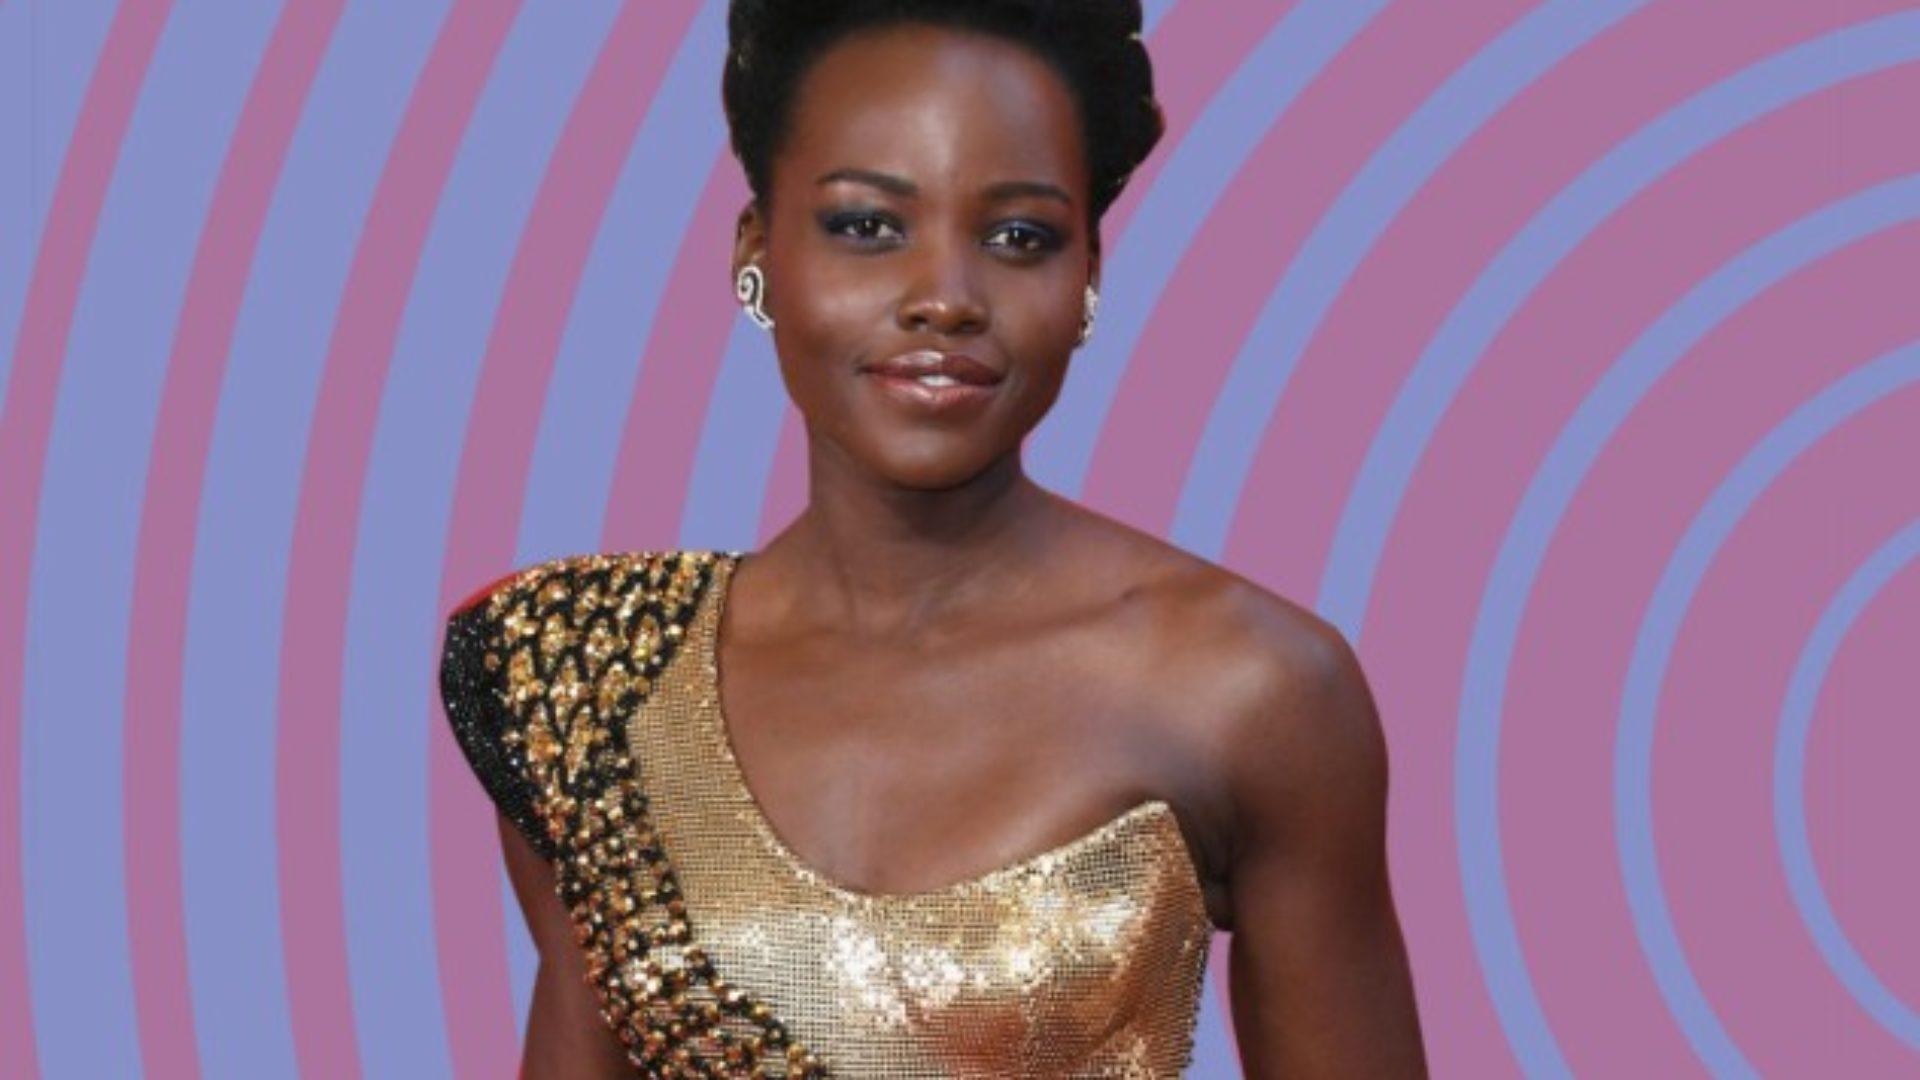 Lupita Nyong'o Wears Natural Bangs To The Governors Awards